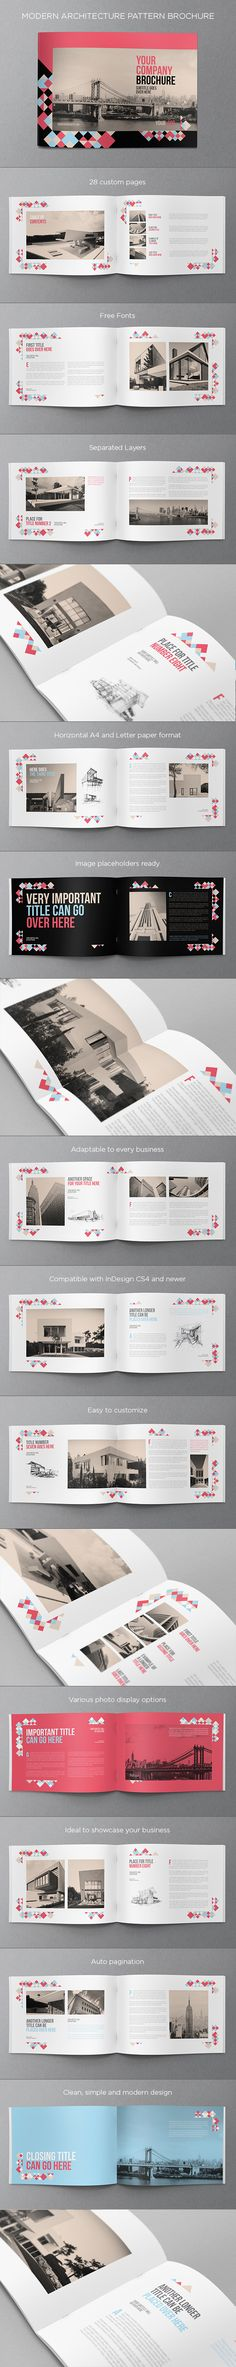 Modern Architecture Pattern Brochure. Download here: http://goo.gl/0HEOCF